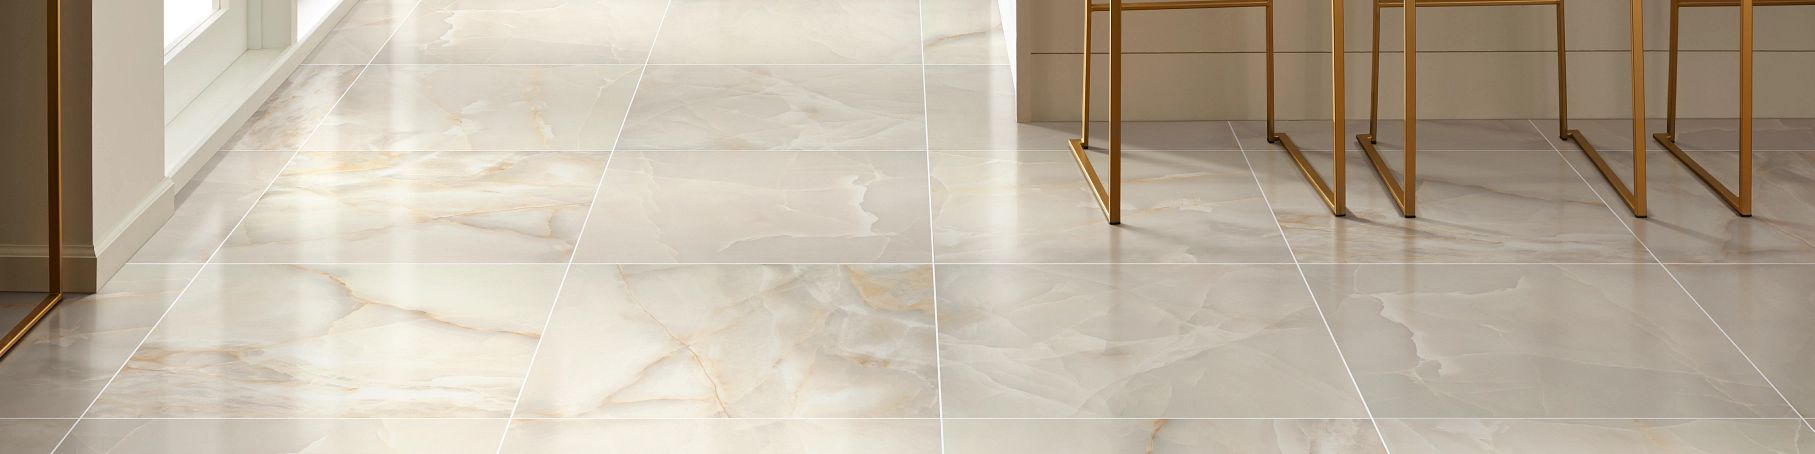 tile and stone flooring store